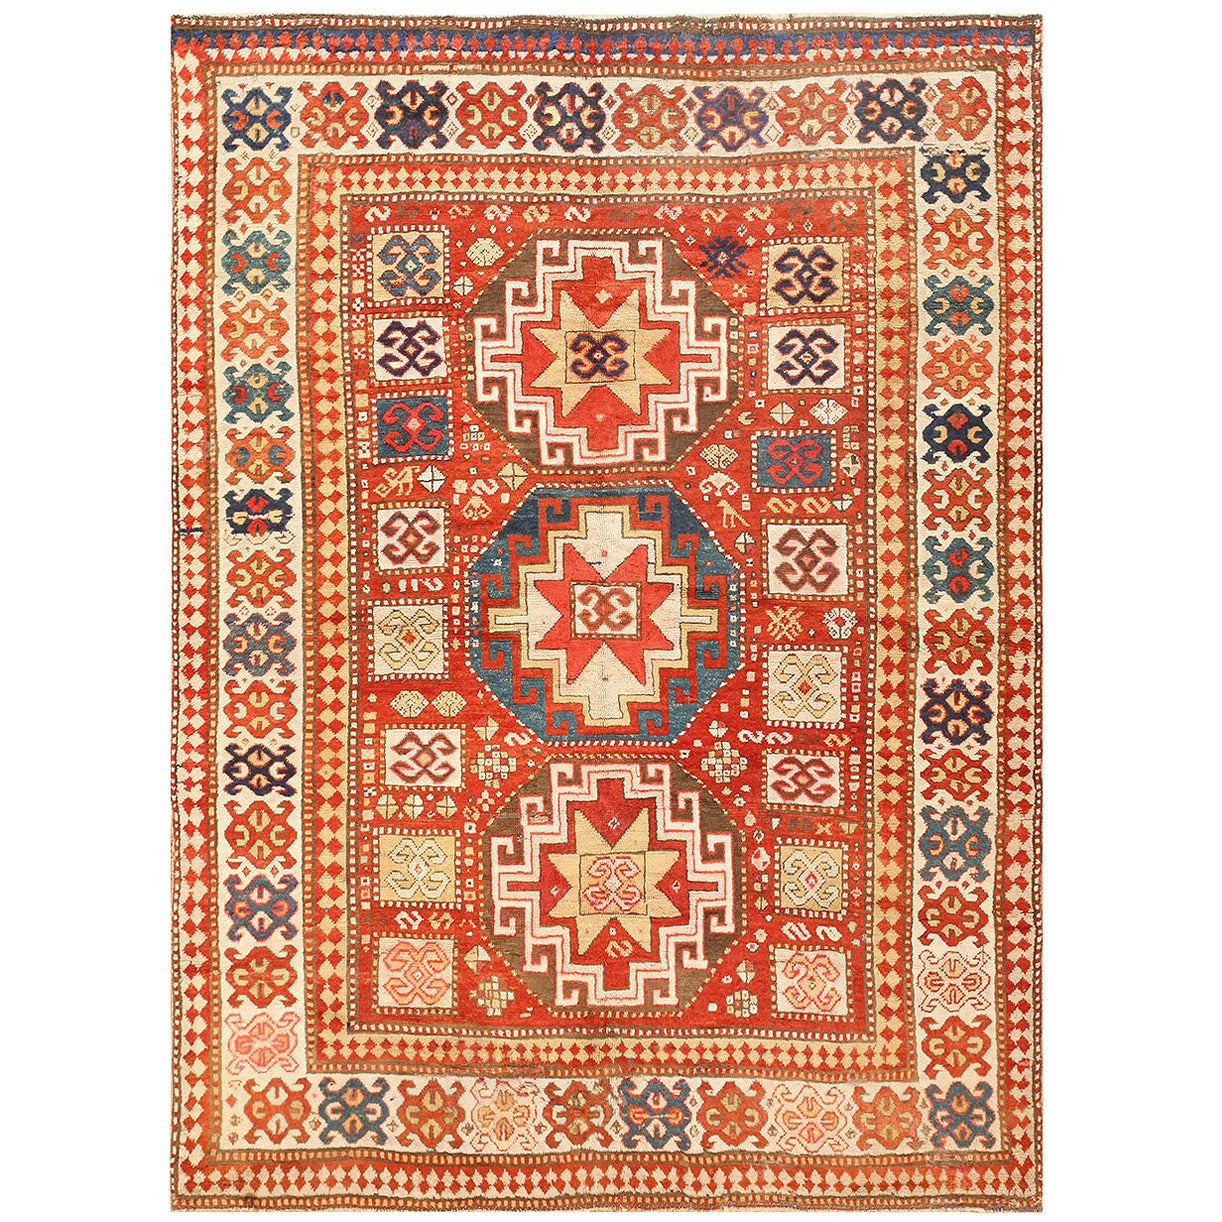 Antique Tribal Kazak Rug For Sale at 1stdibs